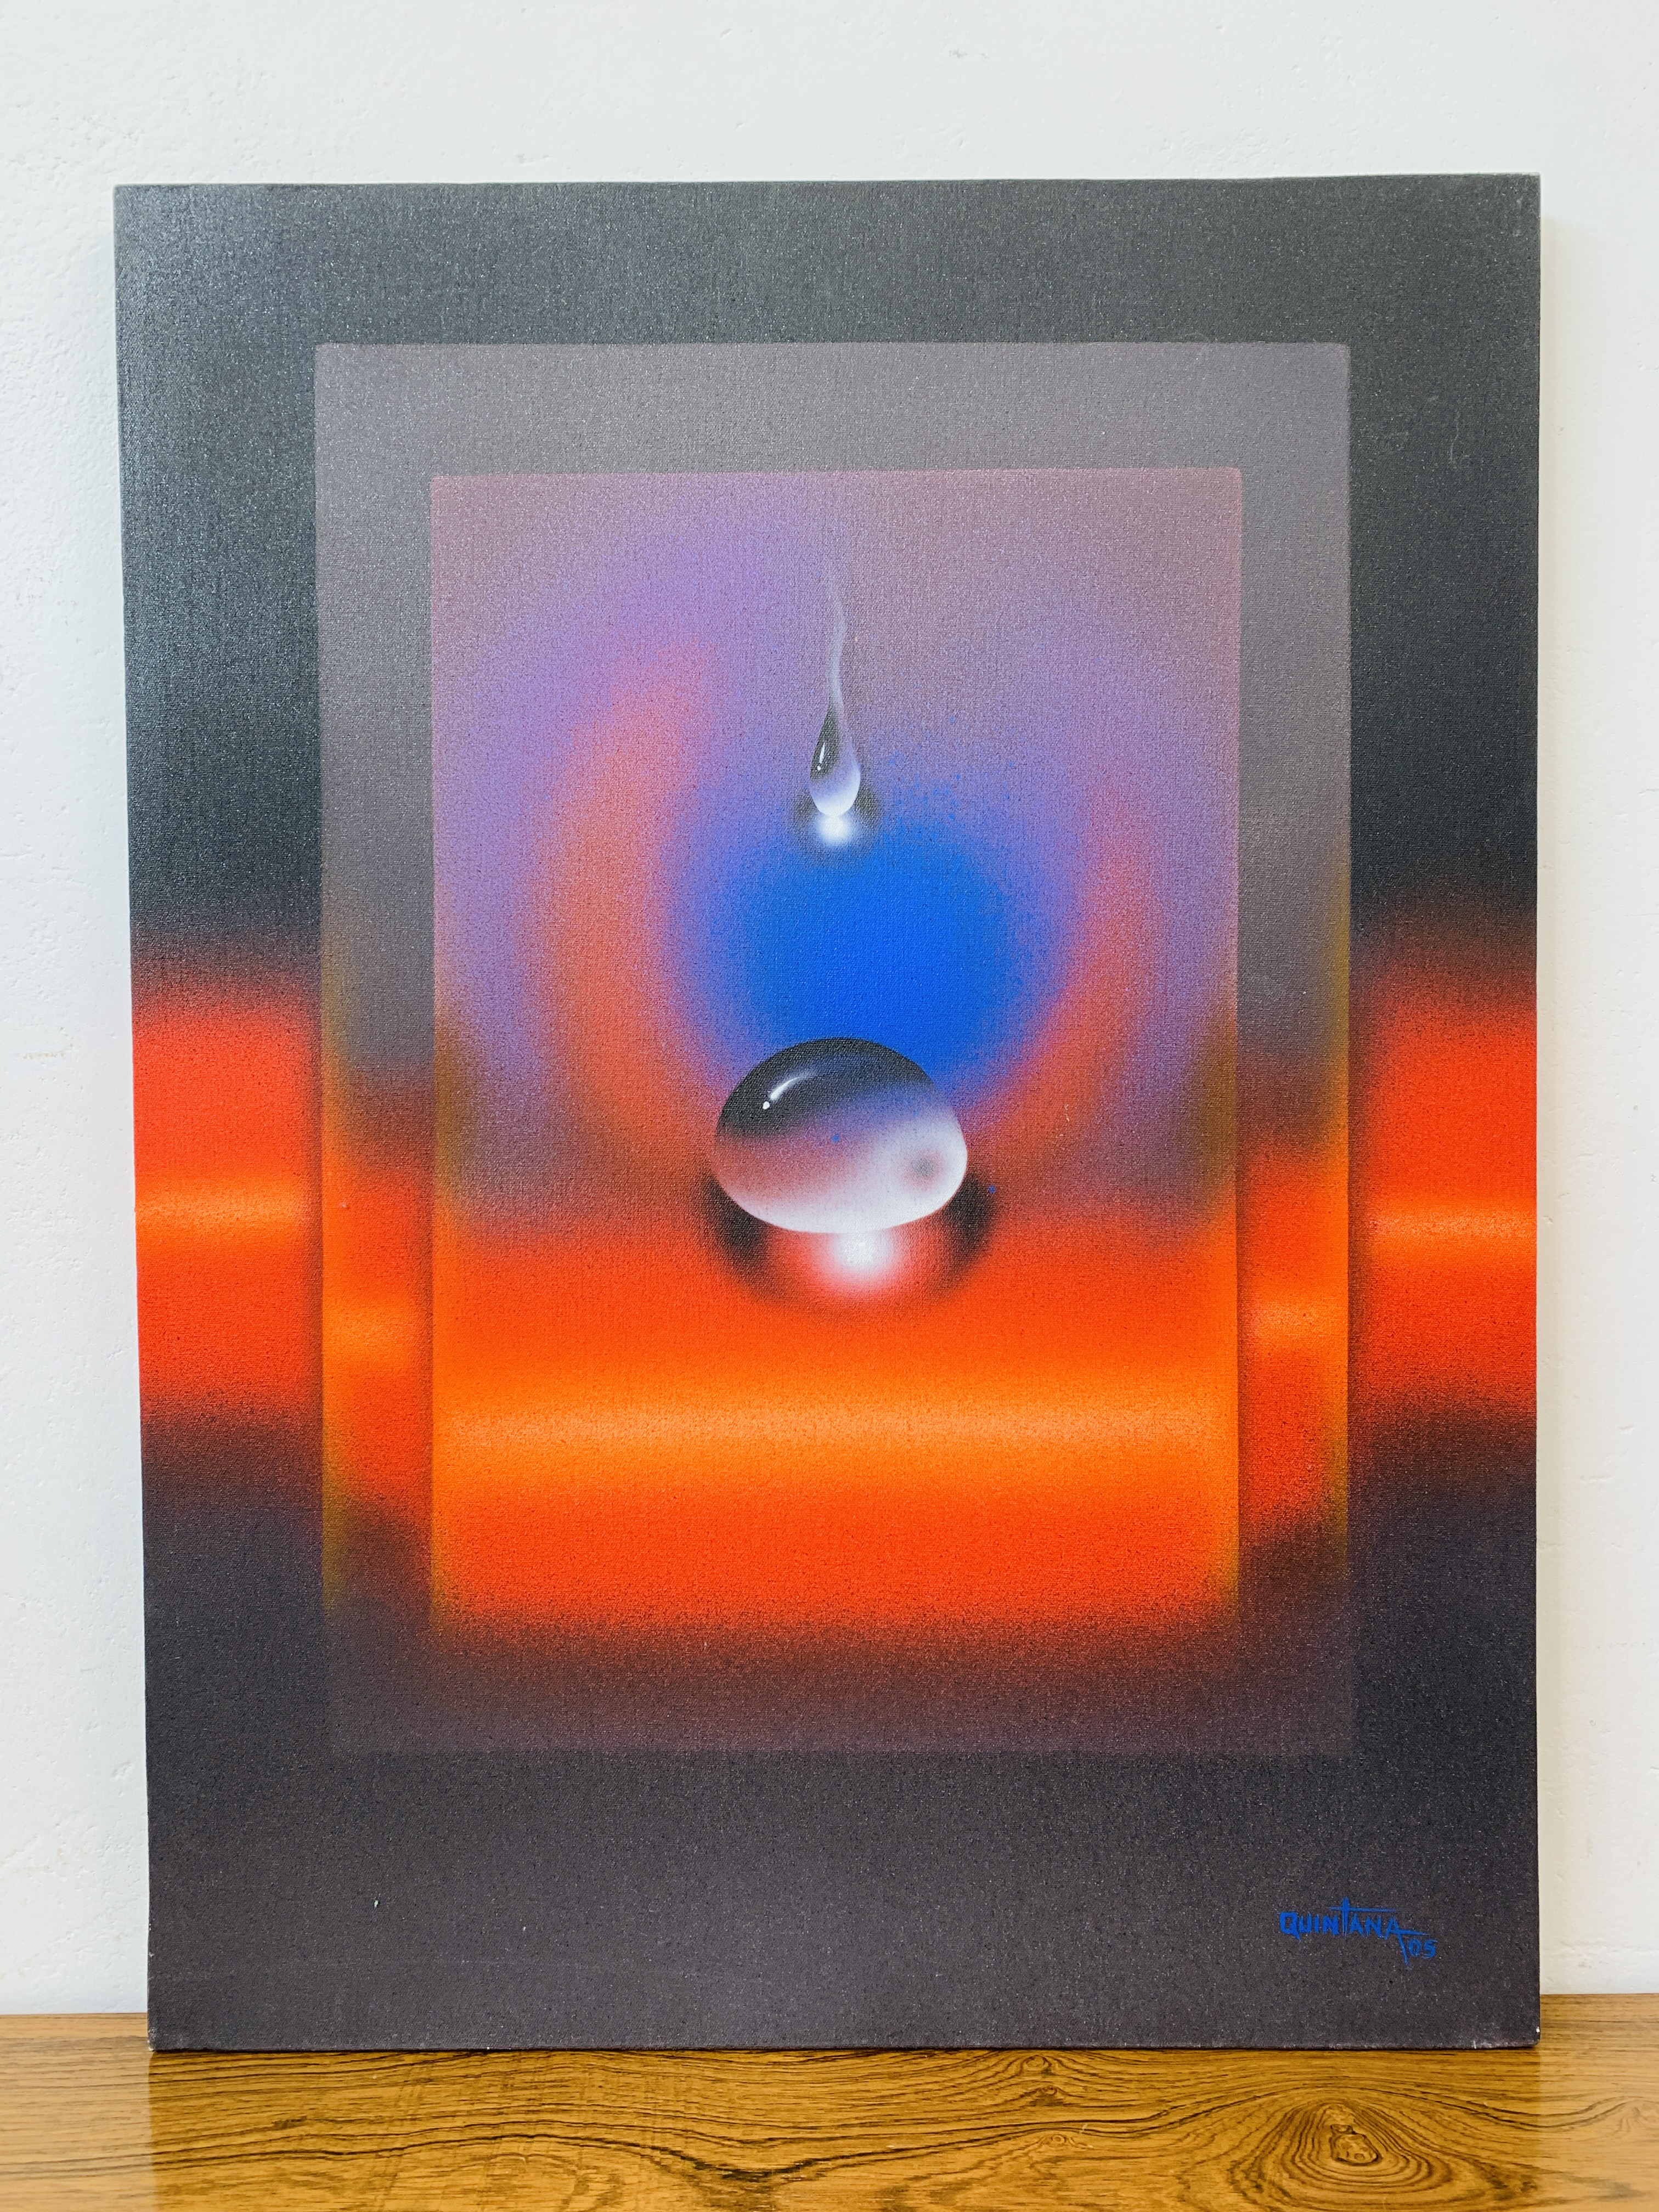 """QUINTANA - AN ABSTRACT OF A """"FALLING DROP"""" OIL ON CANVAS 80 X 60CM SIGNED AND DATED 05"""